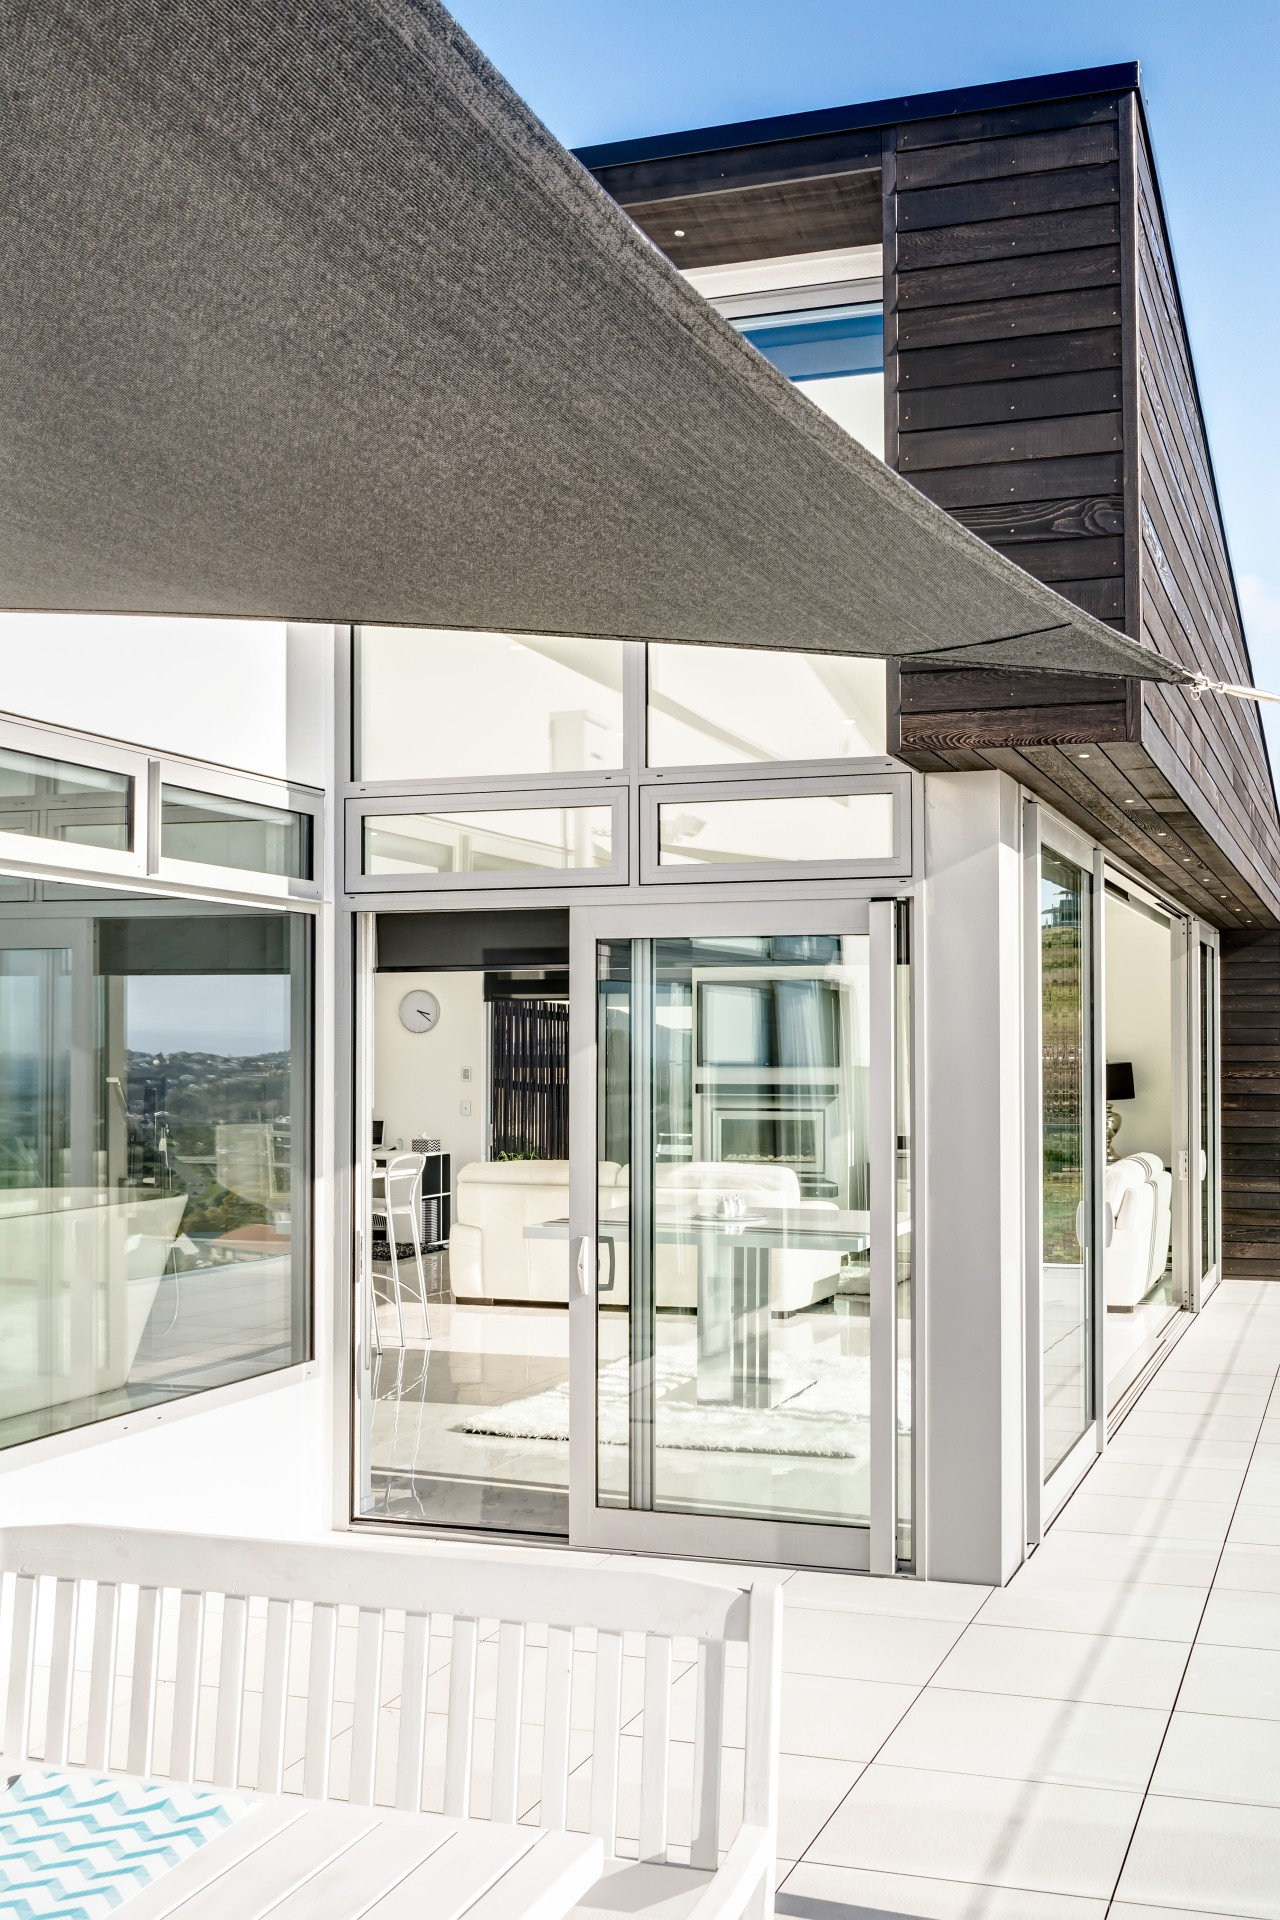 A sail shade shelters the outdoor dining area architecture, building, daylighting, facade, glass, house, window, white